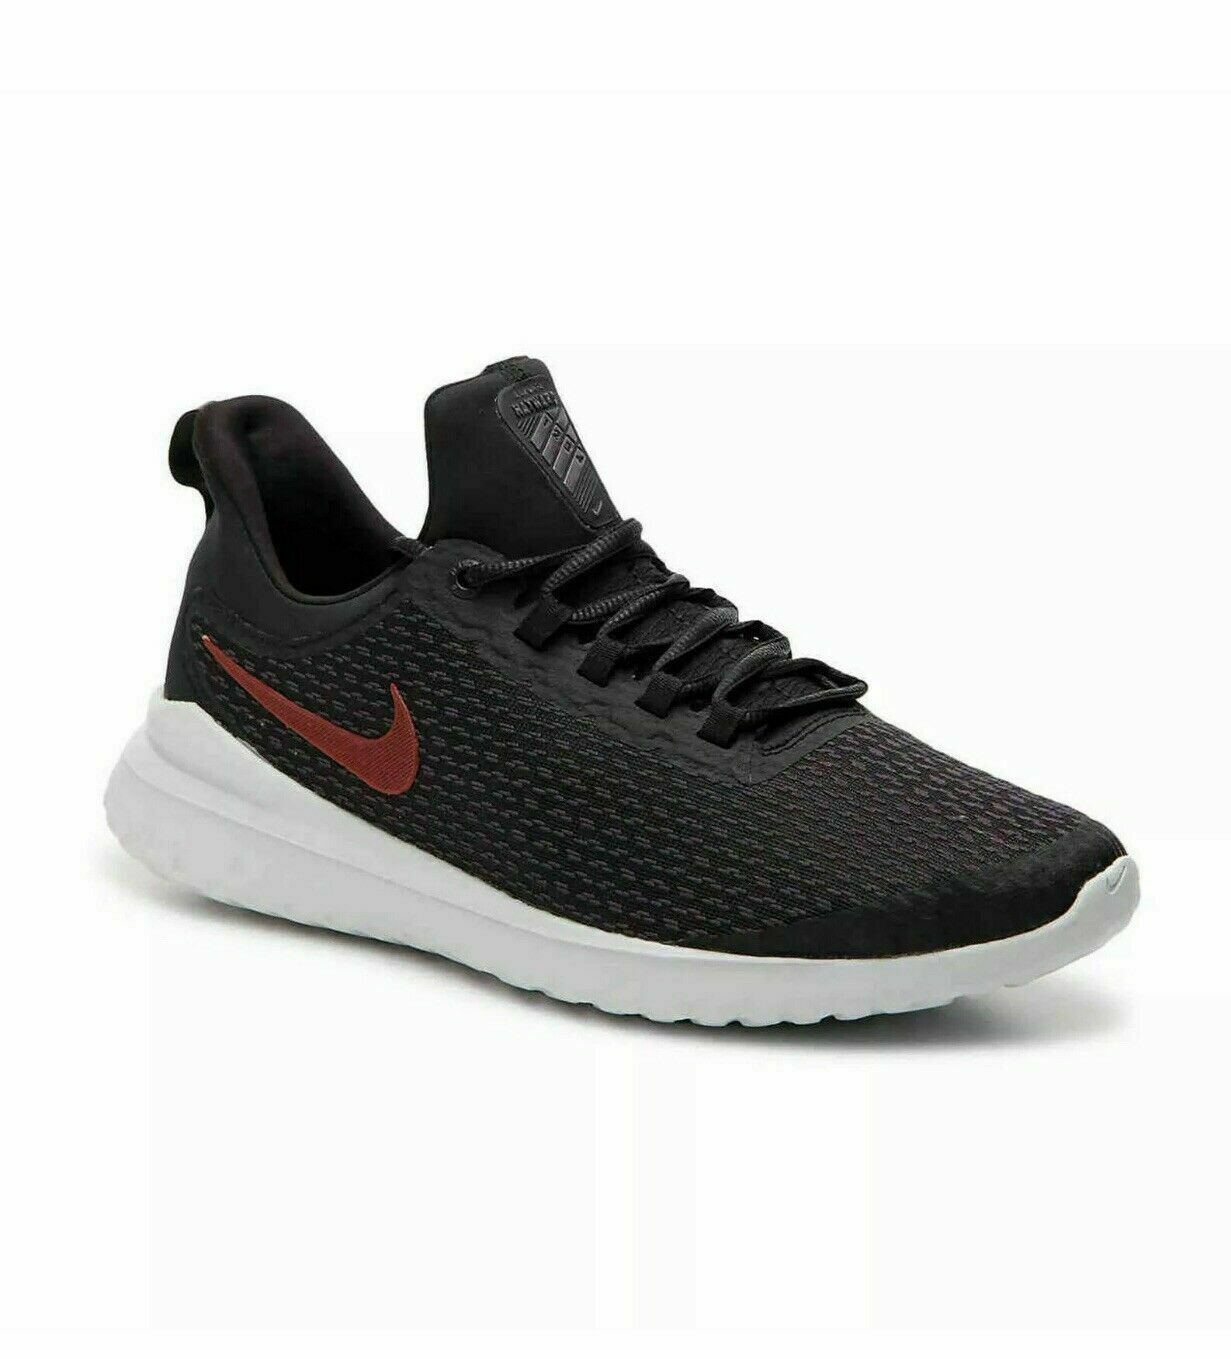 MEN'S NIKE RENEW RIVAL SHOES black red AA7400 016